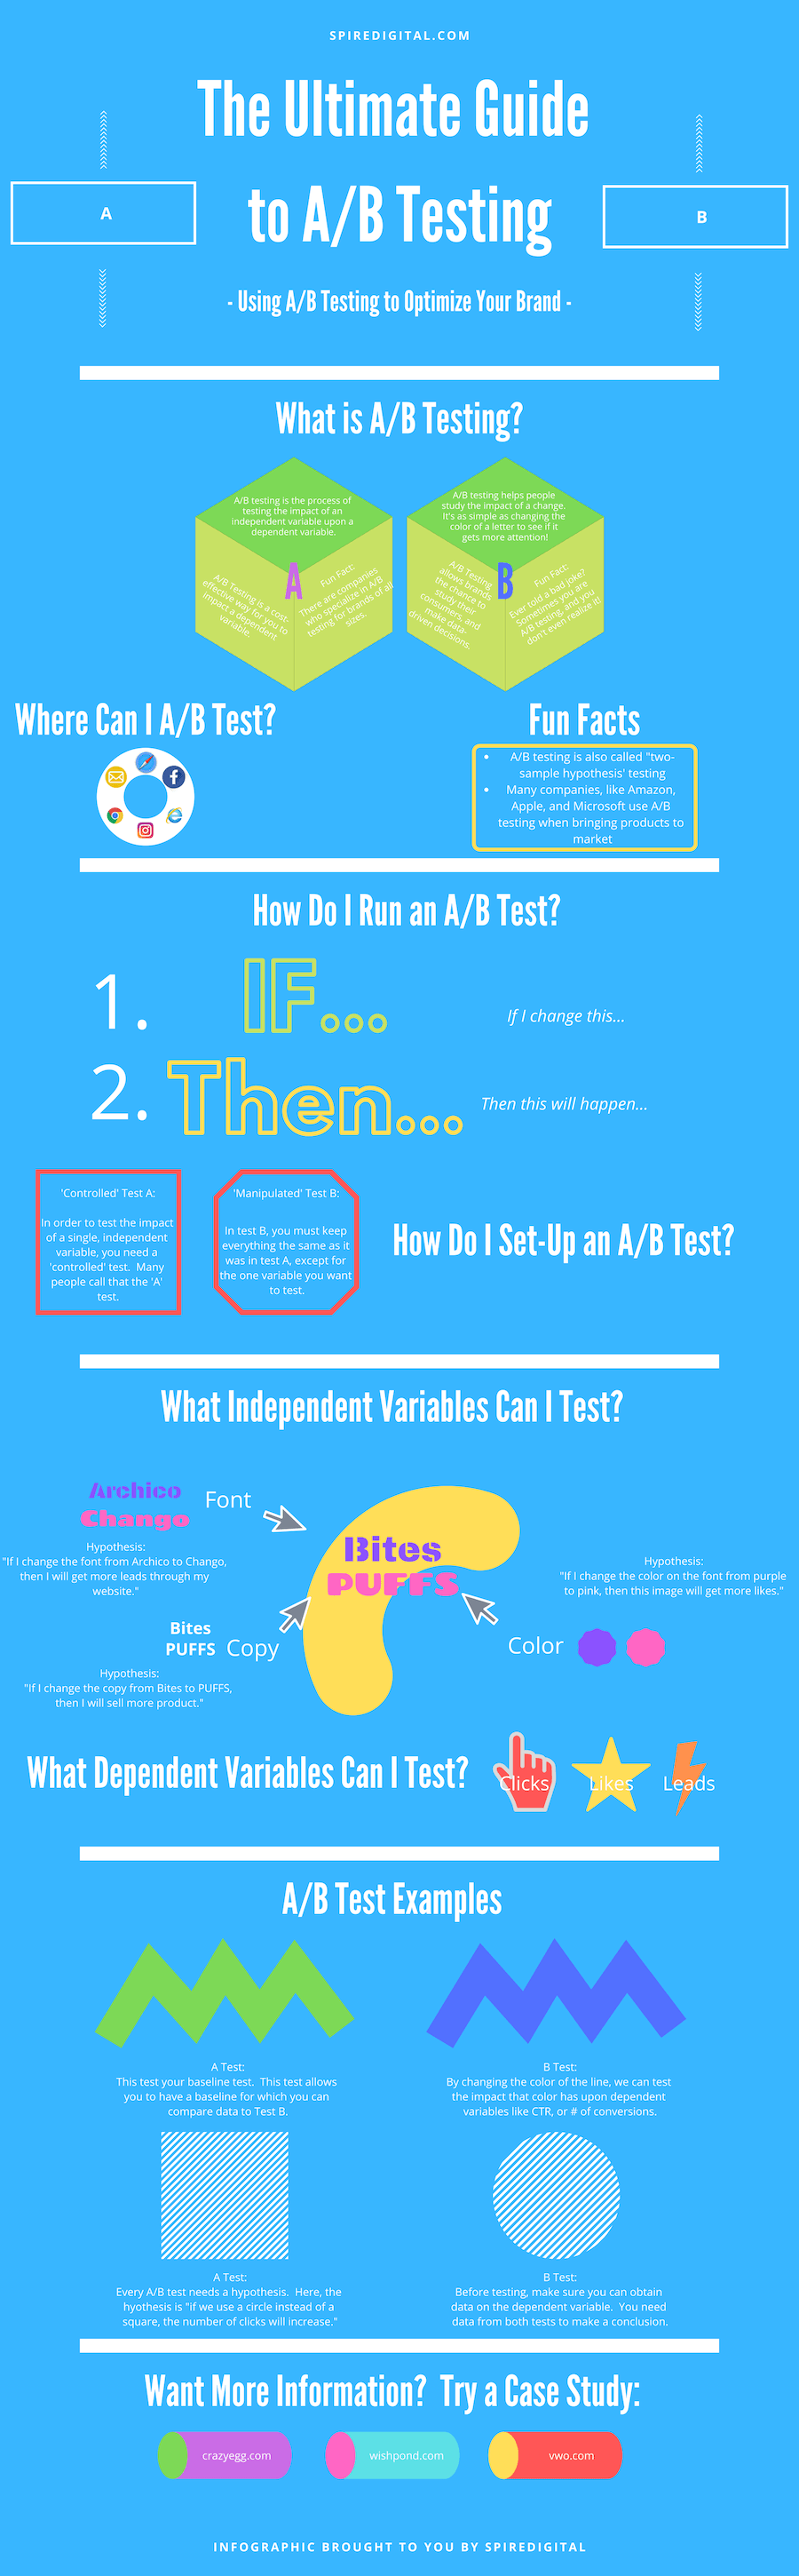 The Ultimate Guide to A/B Testing - Infographic